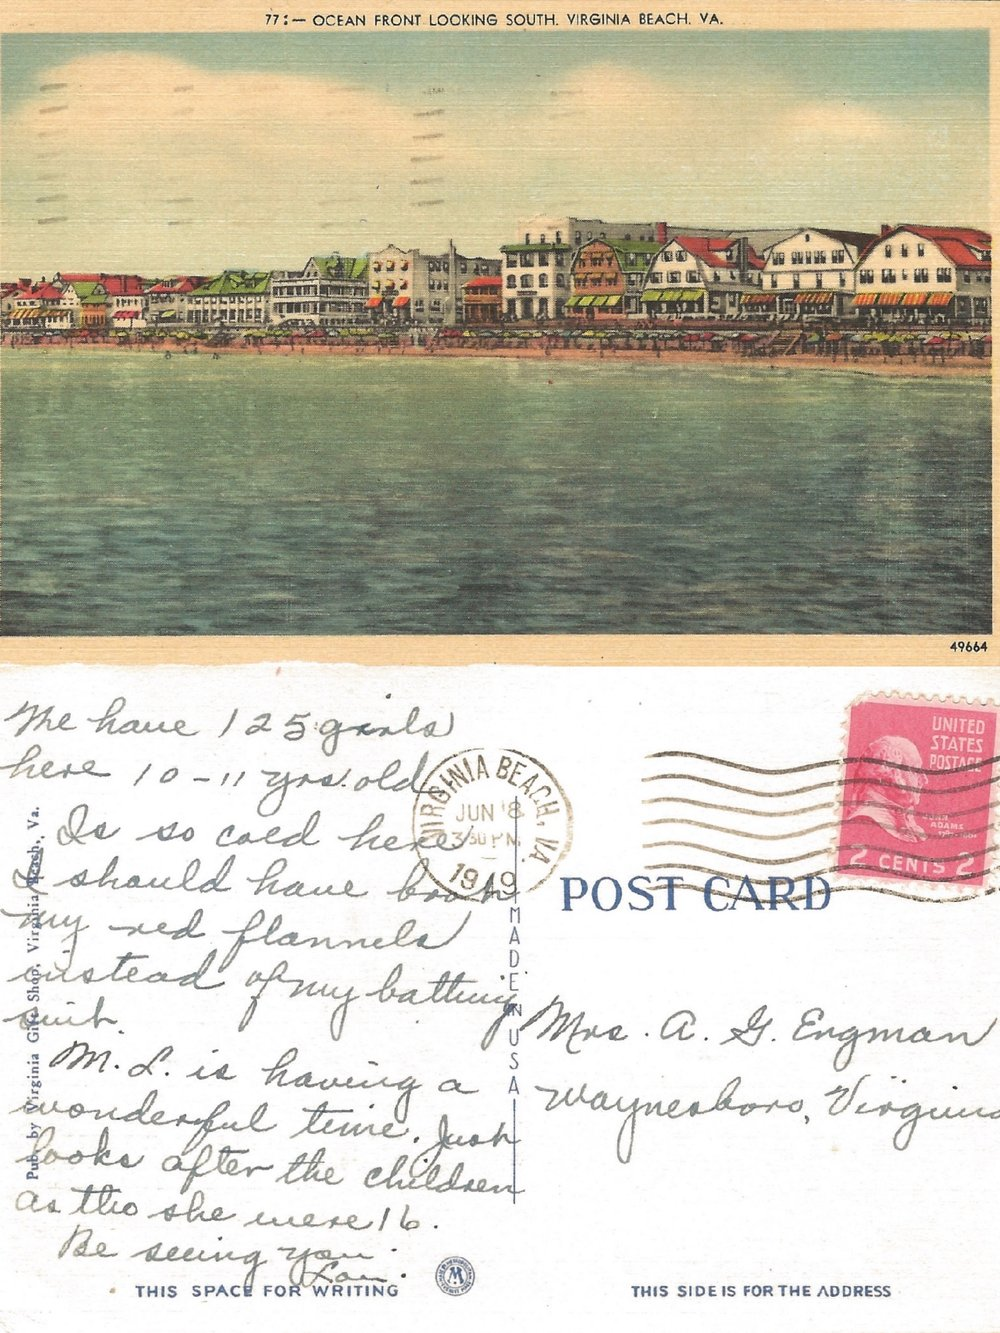 Seems by 1949 the price of a postcard stamp had soared to 2 cents. It was also a time when there were awnings on the hotels to keep out the sun and you could address a postcard simply to Mrs. A. G. Engman, Waynesboro, VA. and it would get there. Or maybe not, since I found this one in an antique store.